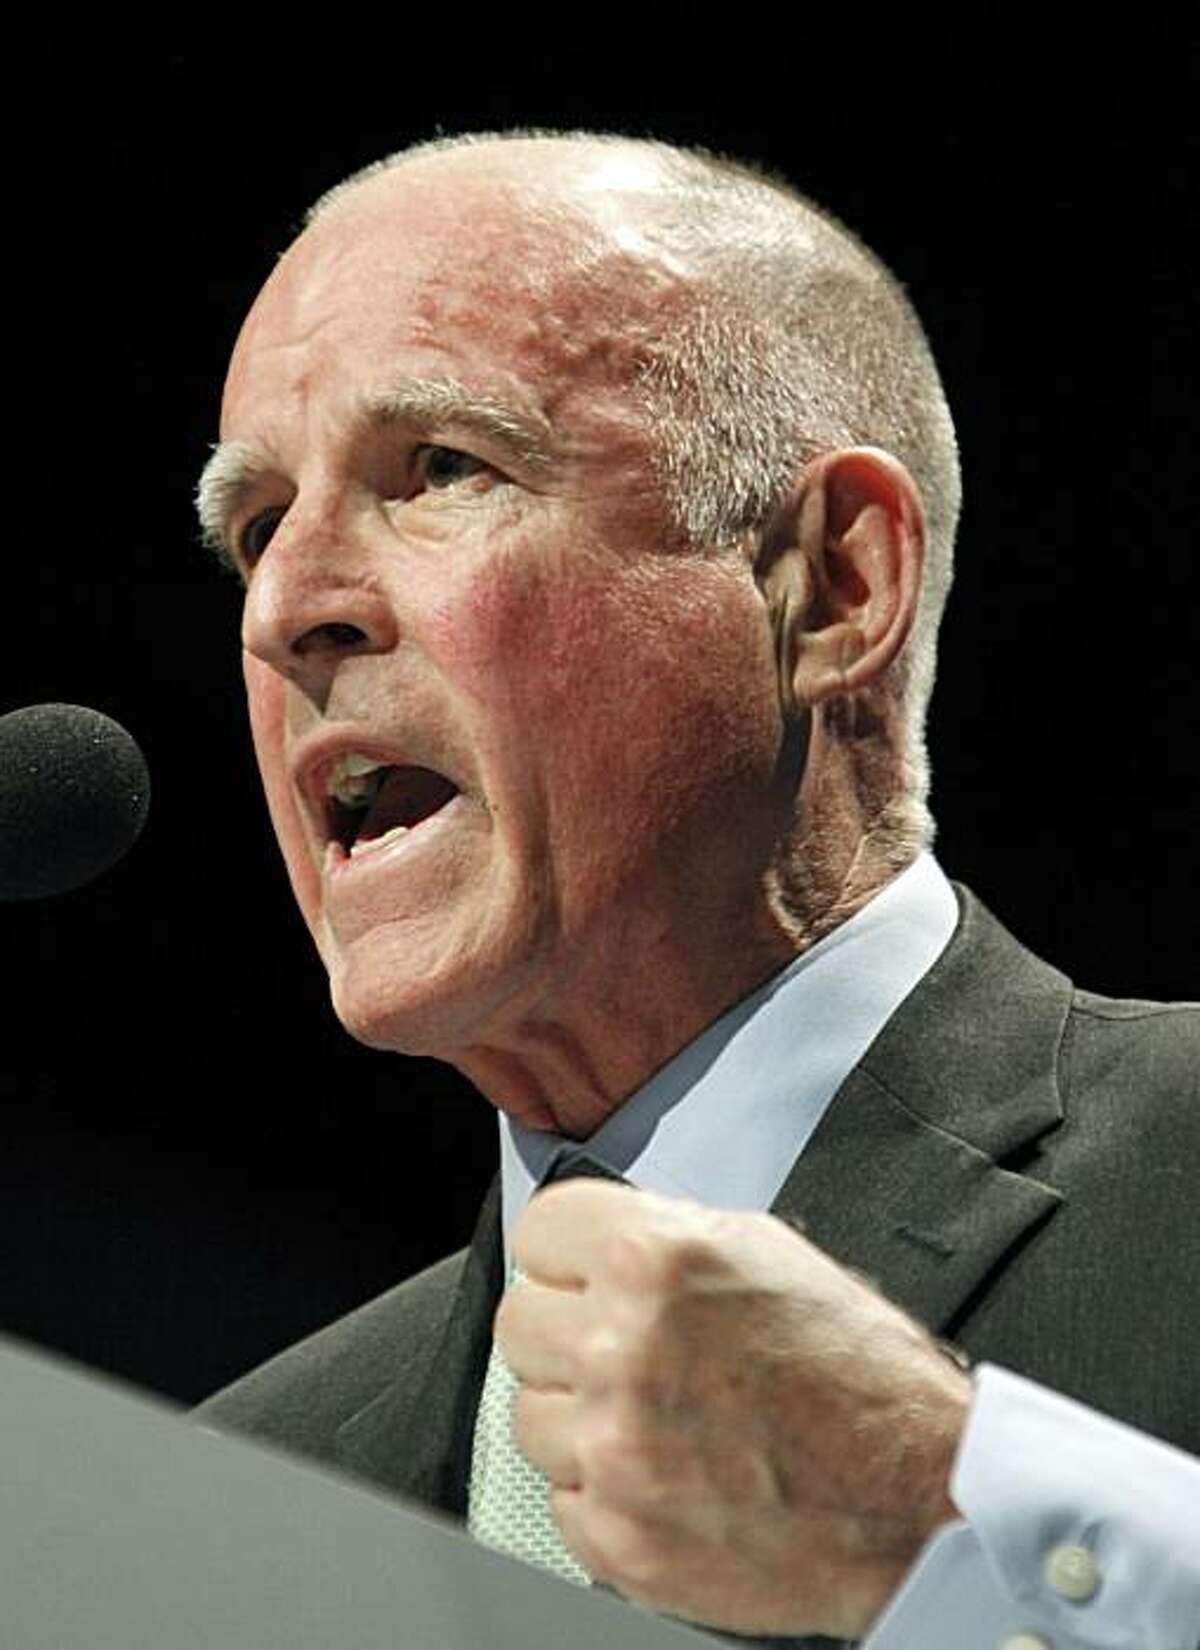 California gubernatorial candidate Jerry Brown speaks at the California Democratic Convention in Los Angeles on Saturday, April 17, 2010.